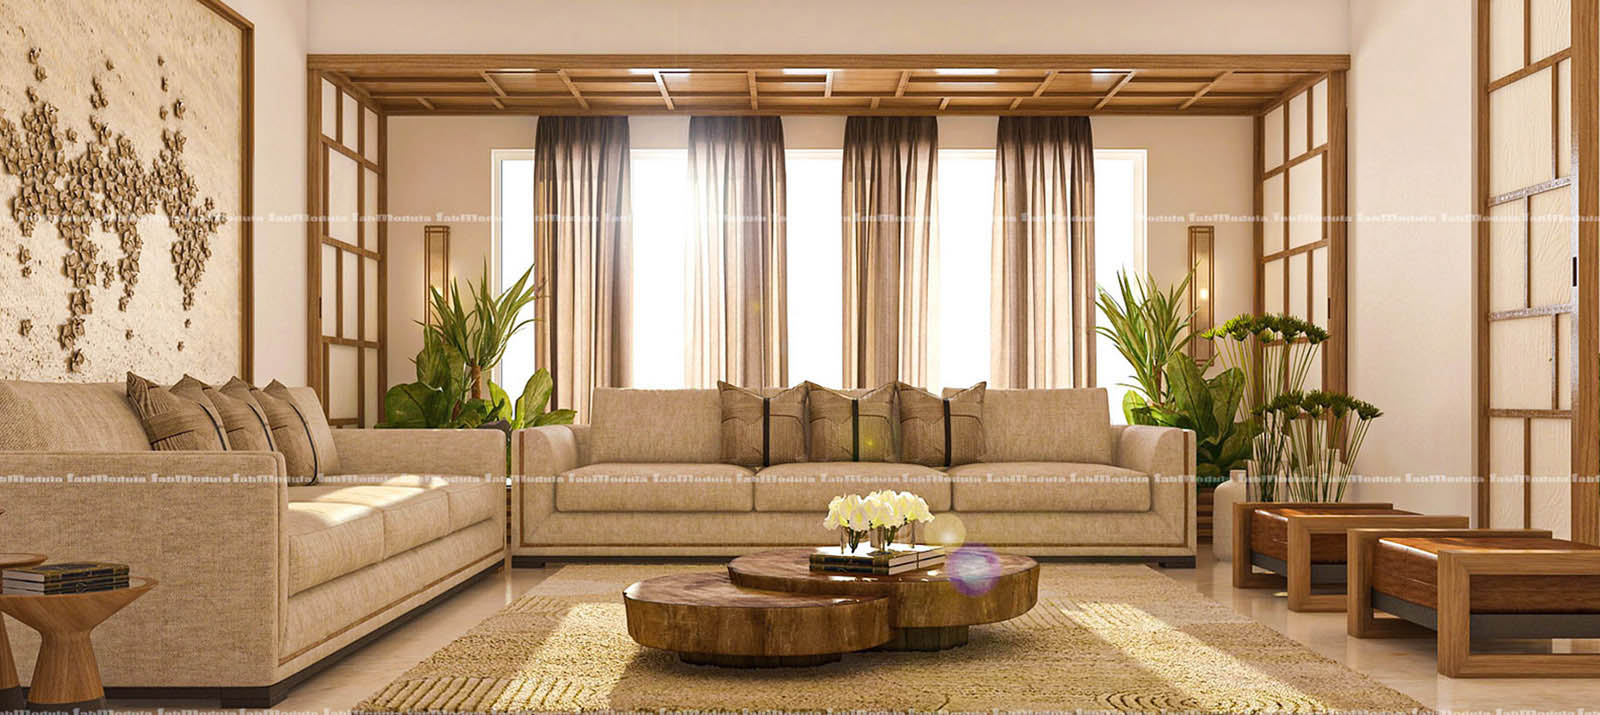 Fabmodula interior designers bangalore best interior design - Apartment interiors in bangalore ...